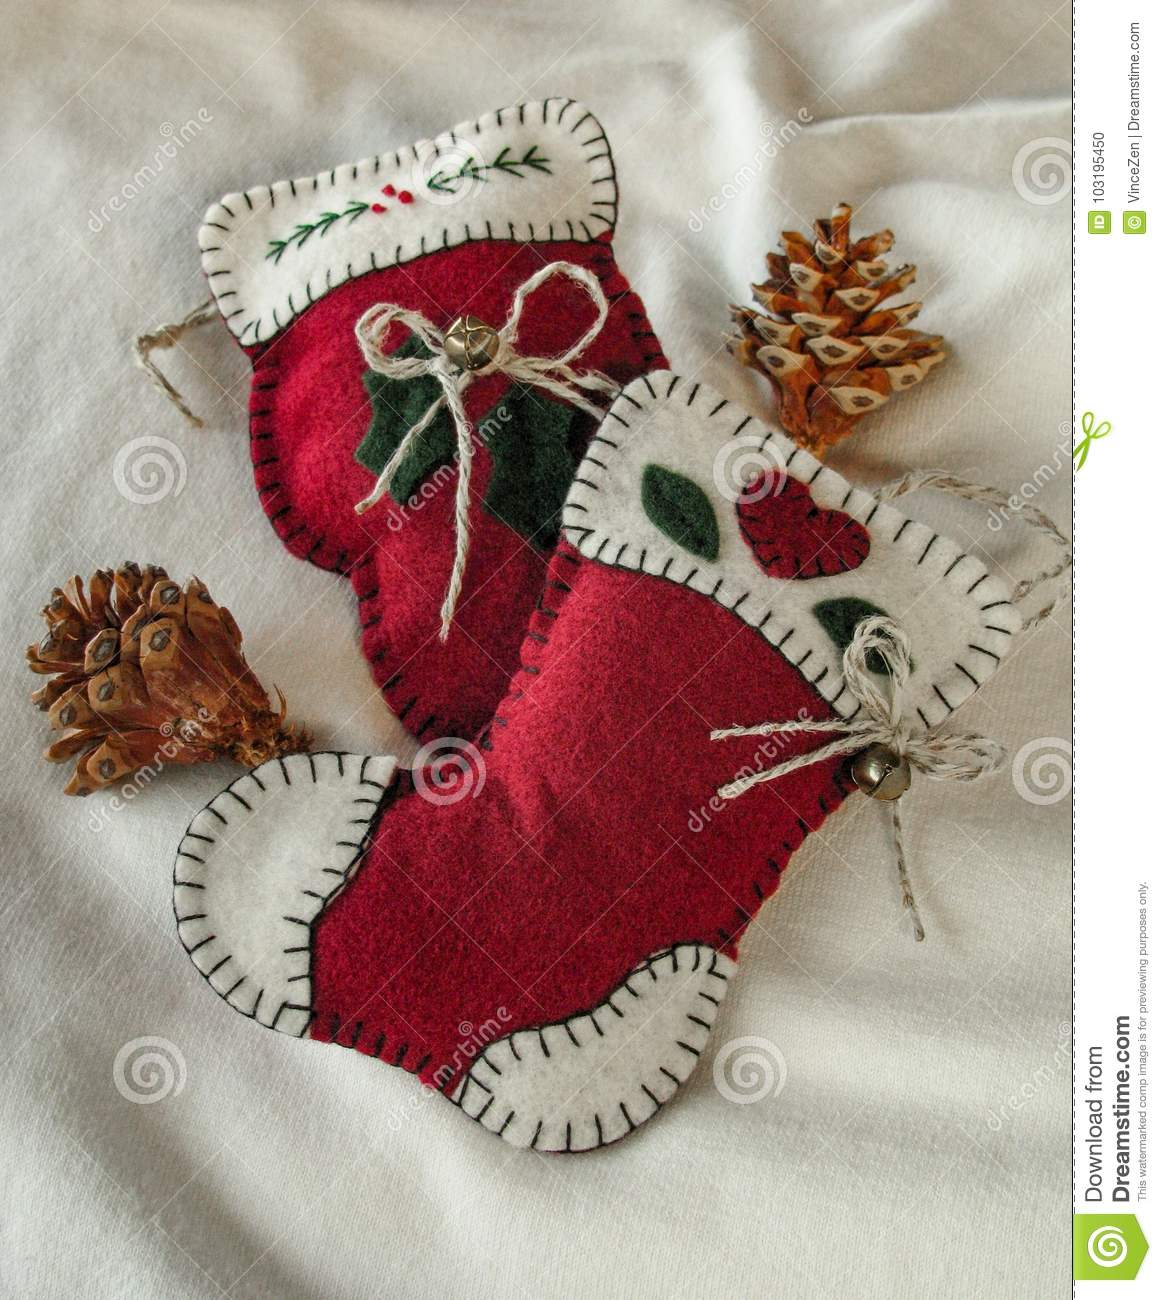 Bright Red Fabric Christmas Tree Ornaments Stock Photo Image Of Stitched Mitten 103195450